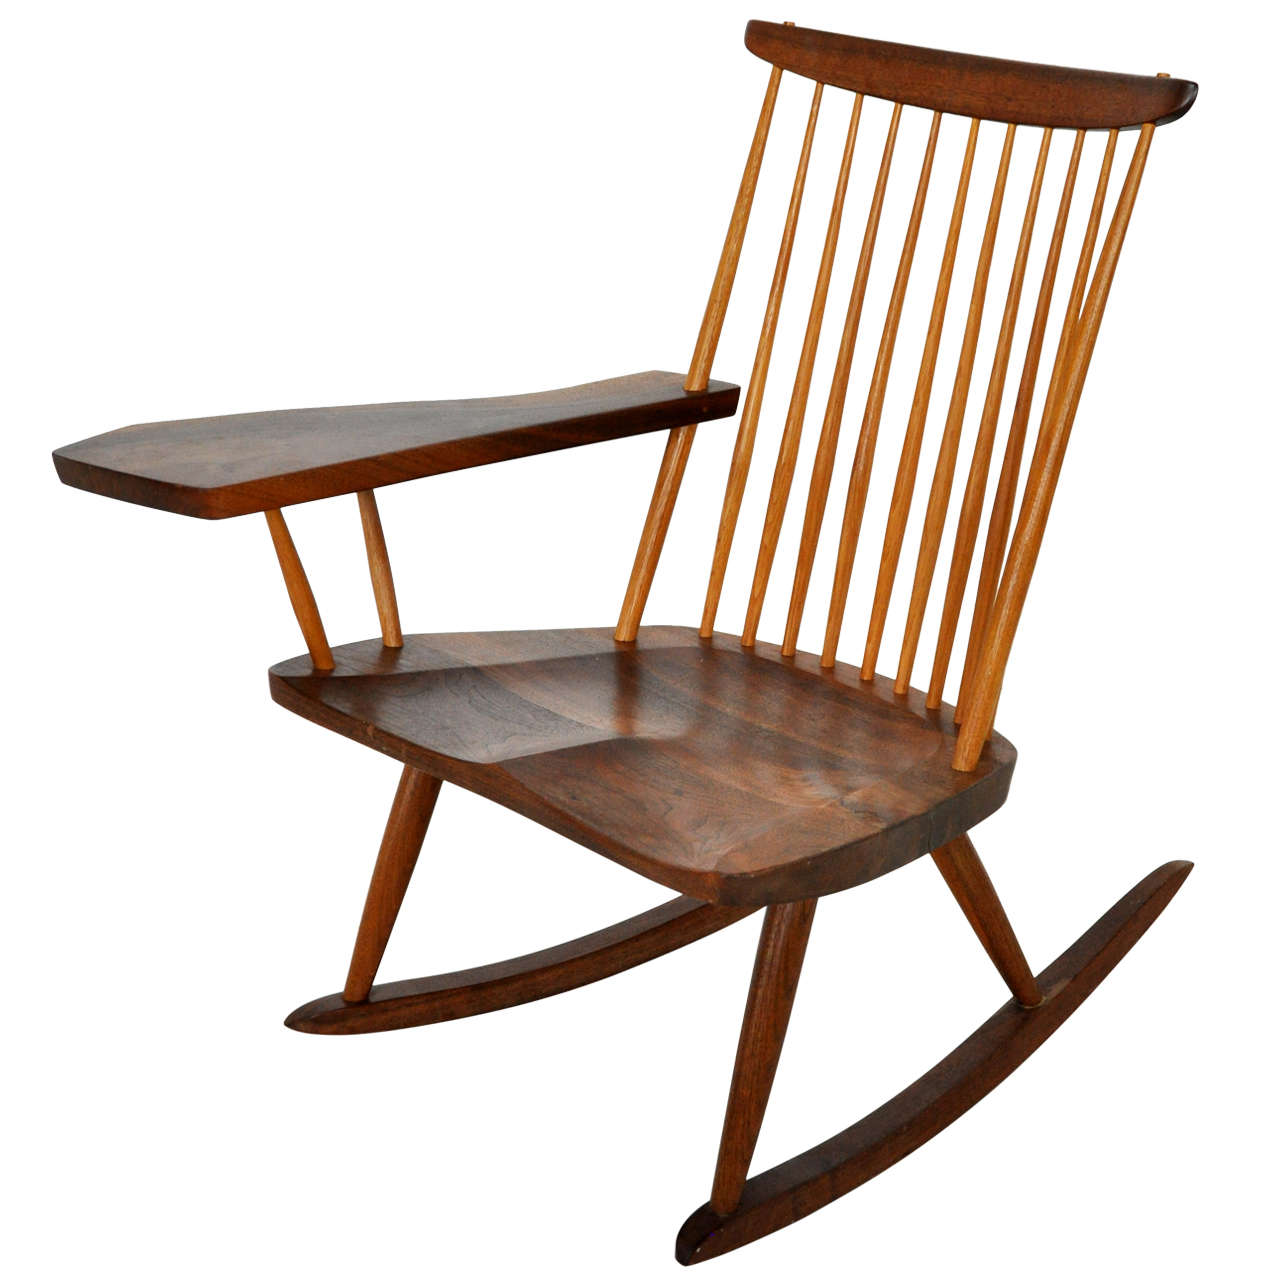 george nakashima rocking chair for sale at 1stdibs. Black Bedroom Furniture Sets. Home Design Ideas